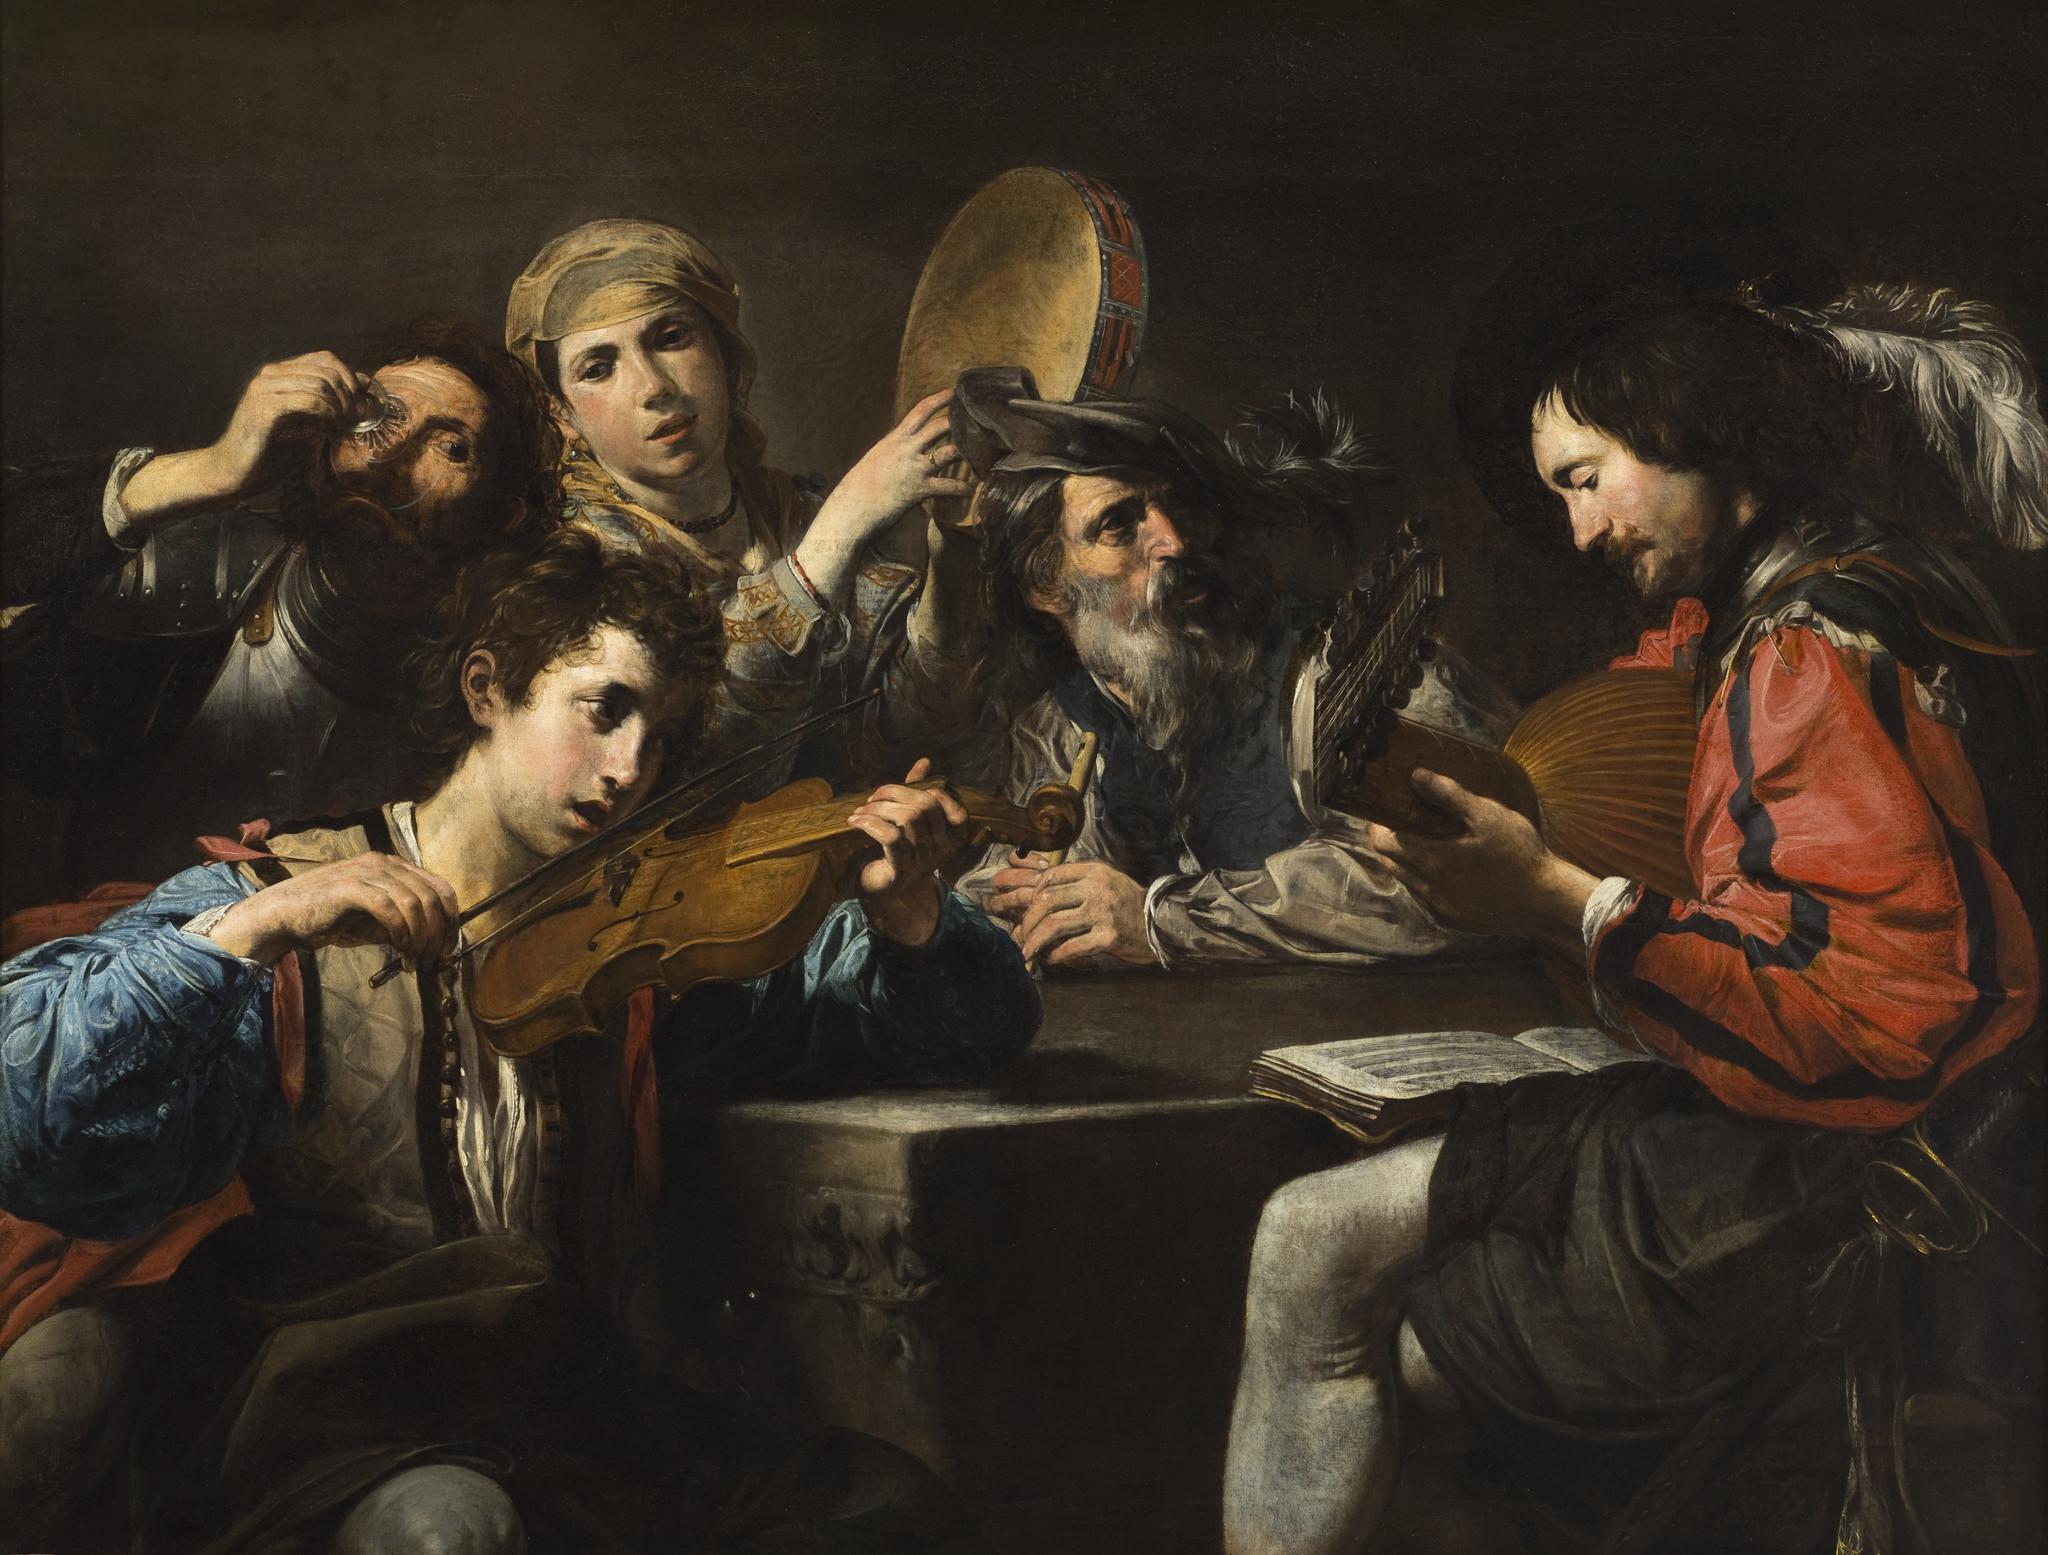 """ Musical Party"" by Valentin de Boulogne, acquired by J. Patrice Marandel for LACMA with funds from the Ahmanson Foundation."